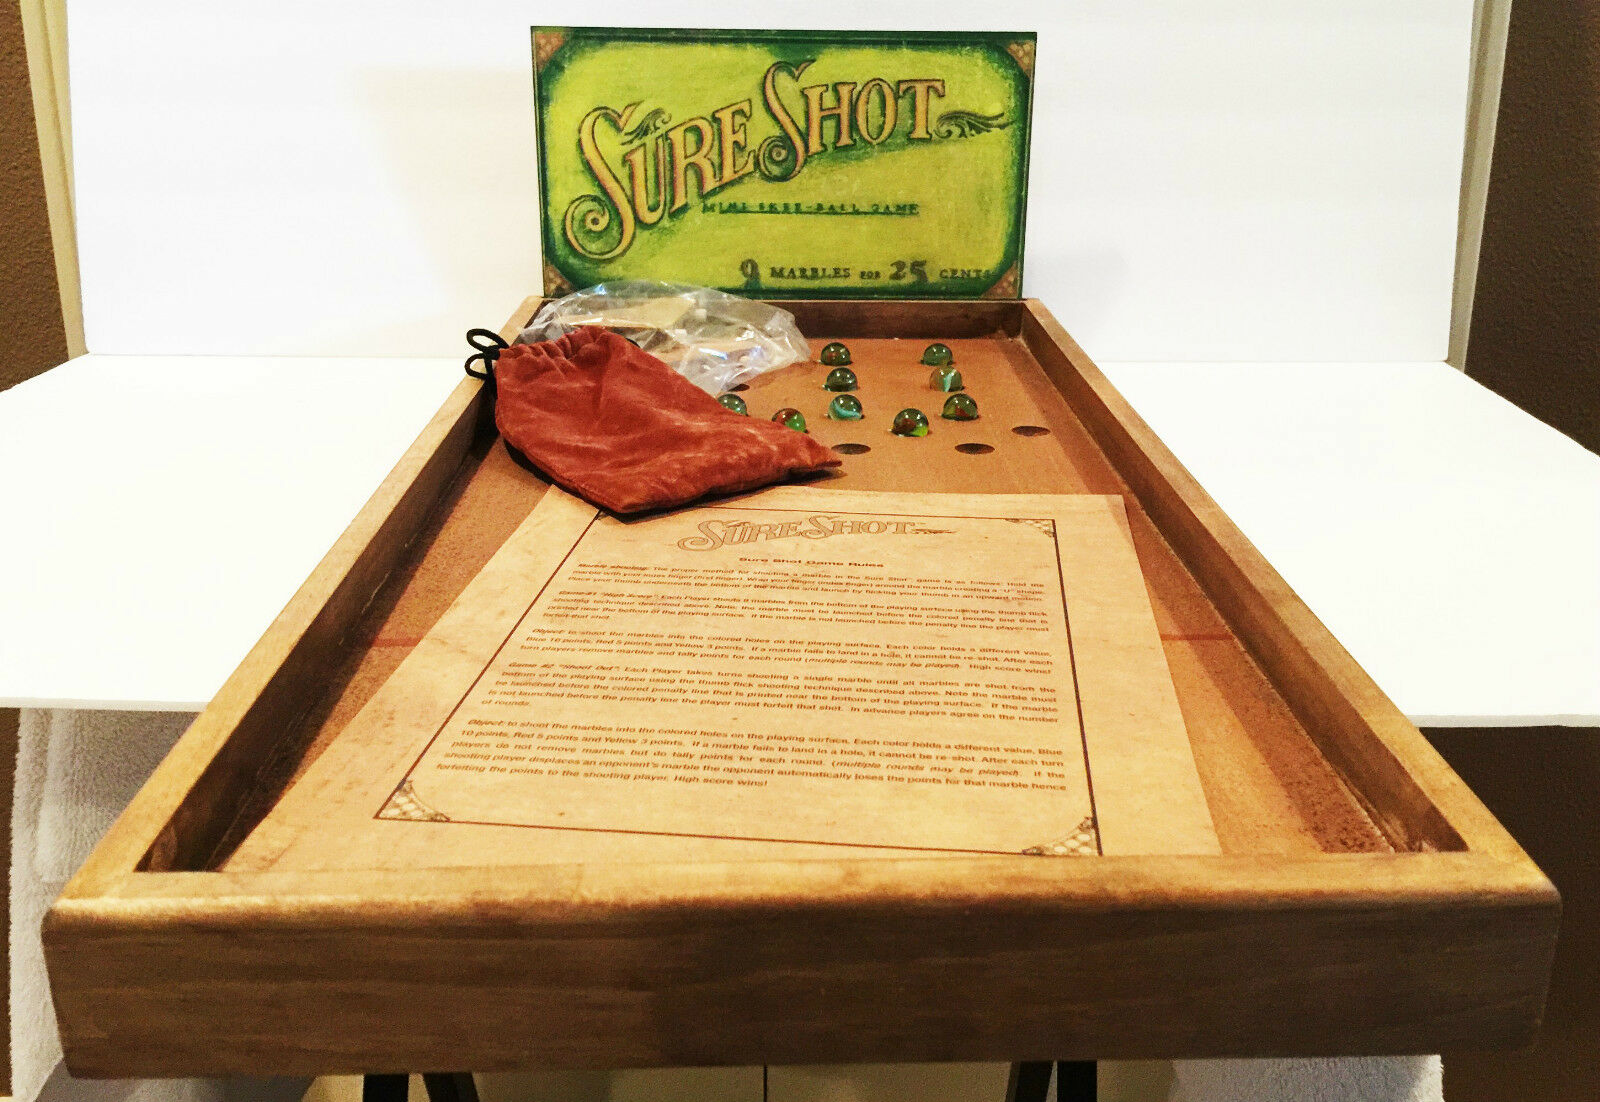 RARE BRAND NEW REPRODUCTION SURE SHOT MINI SKEE-BALL MARBLE GAME MINT